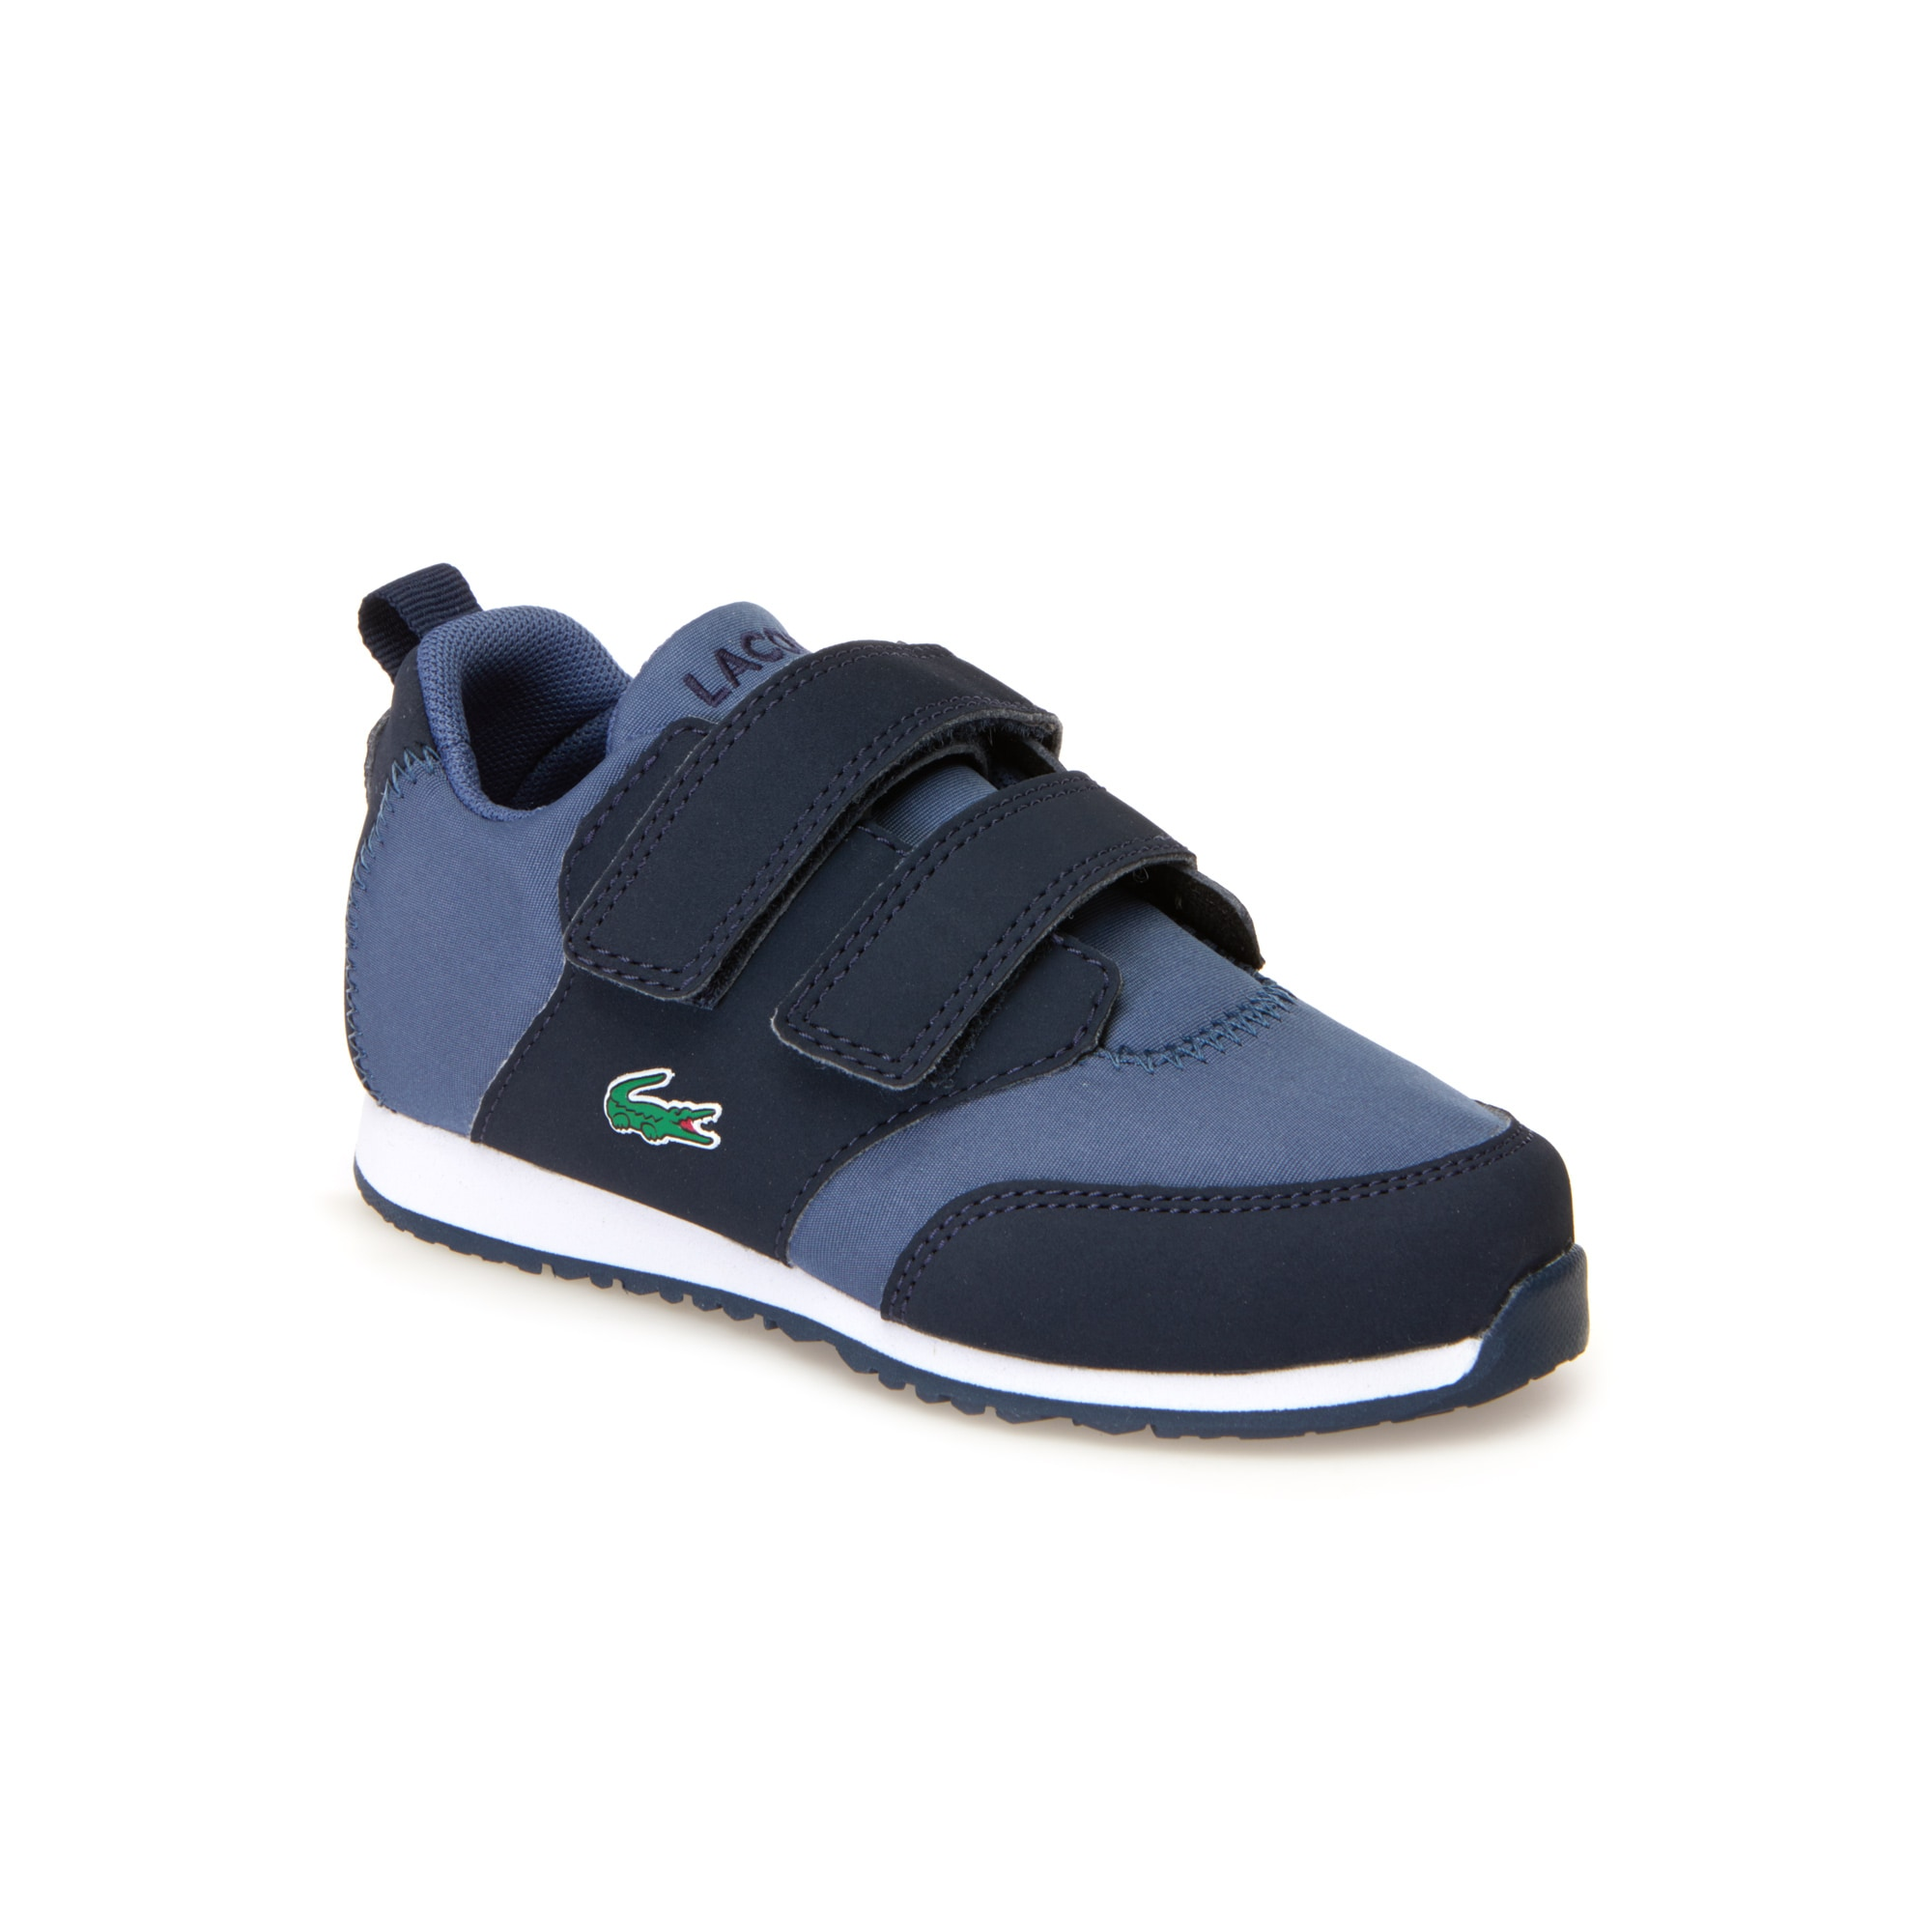 481df456d3b89 Baby collection | Kids Footwear | LACOSTE